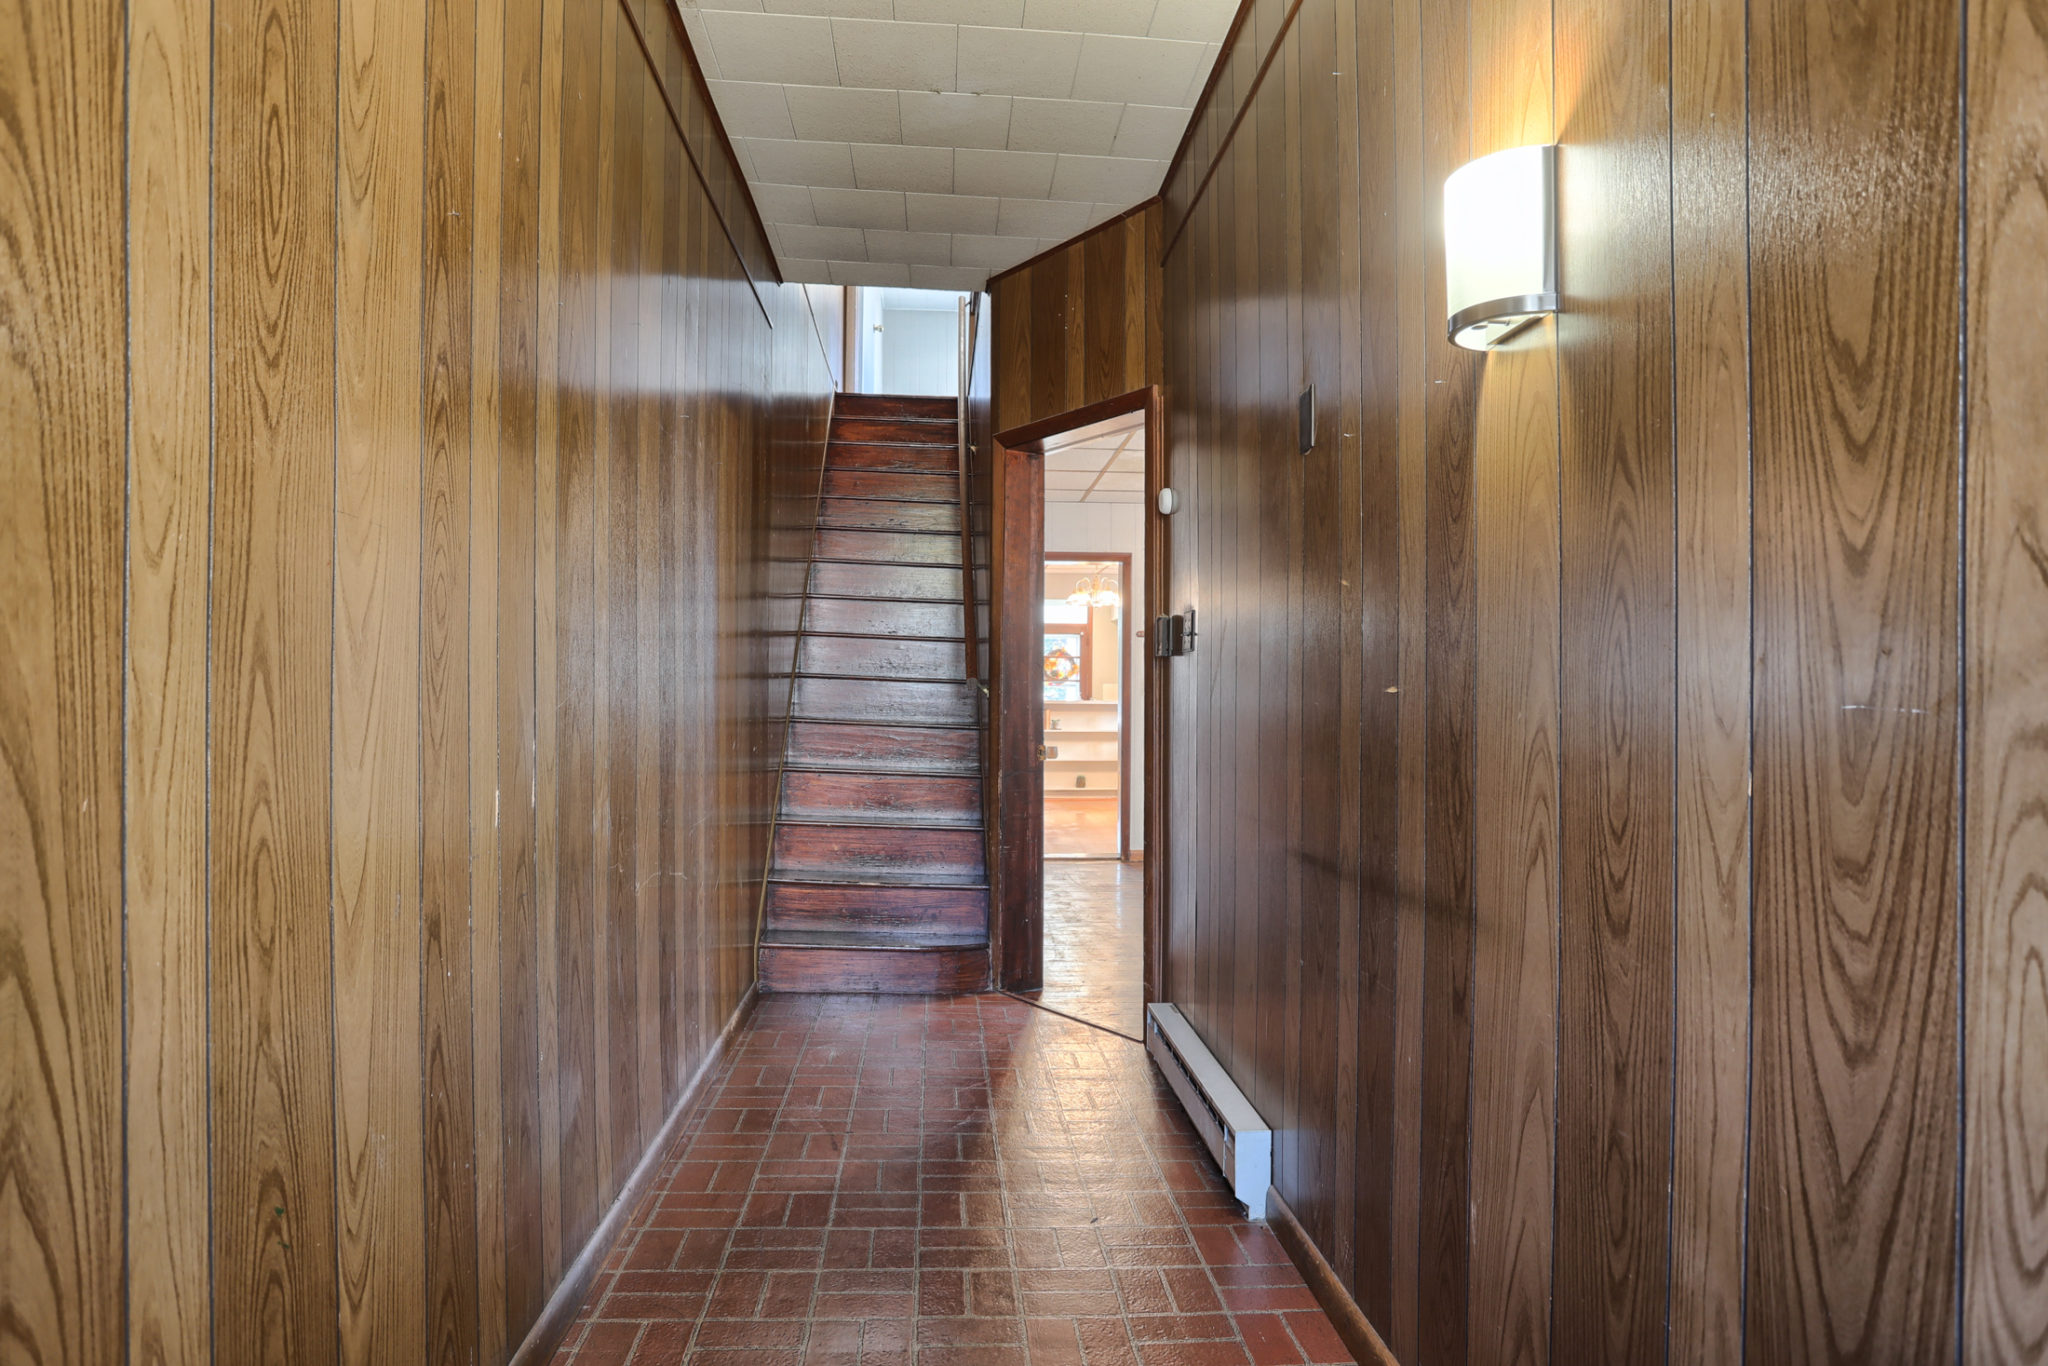 12 E. Maple Avenue - Myerstown Home offers 3 bedrooms and full bath upstairs